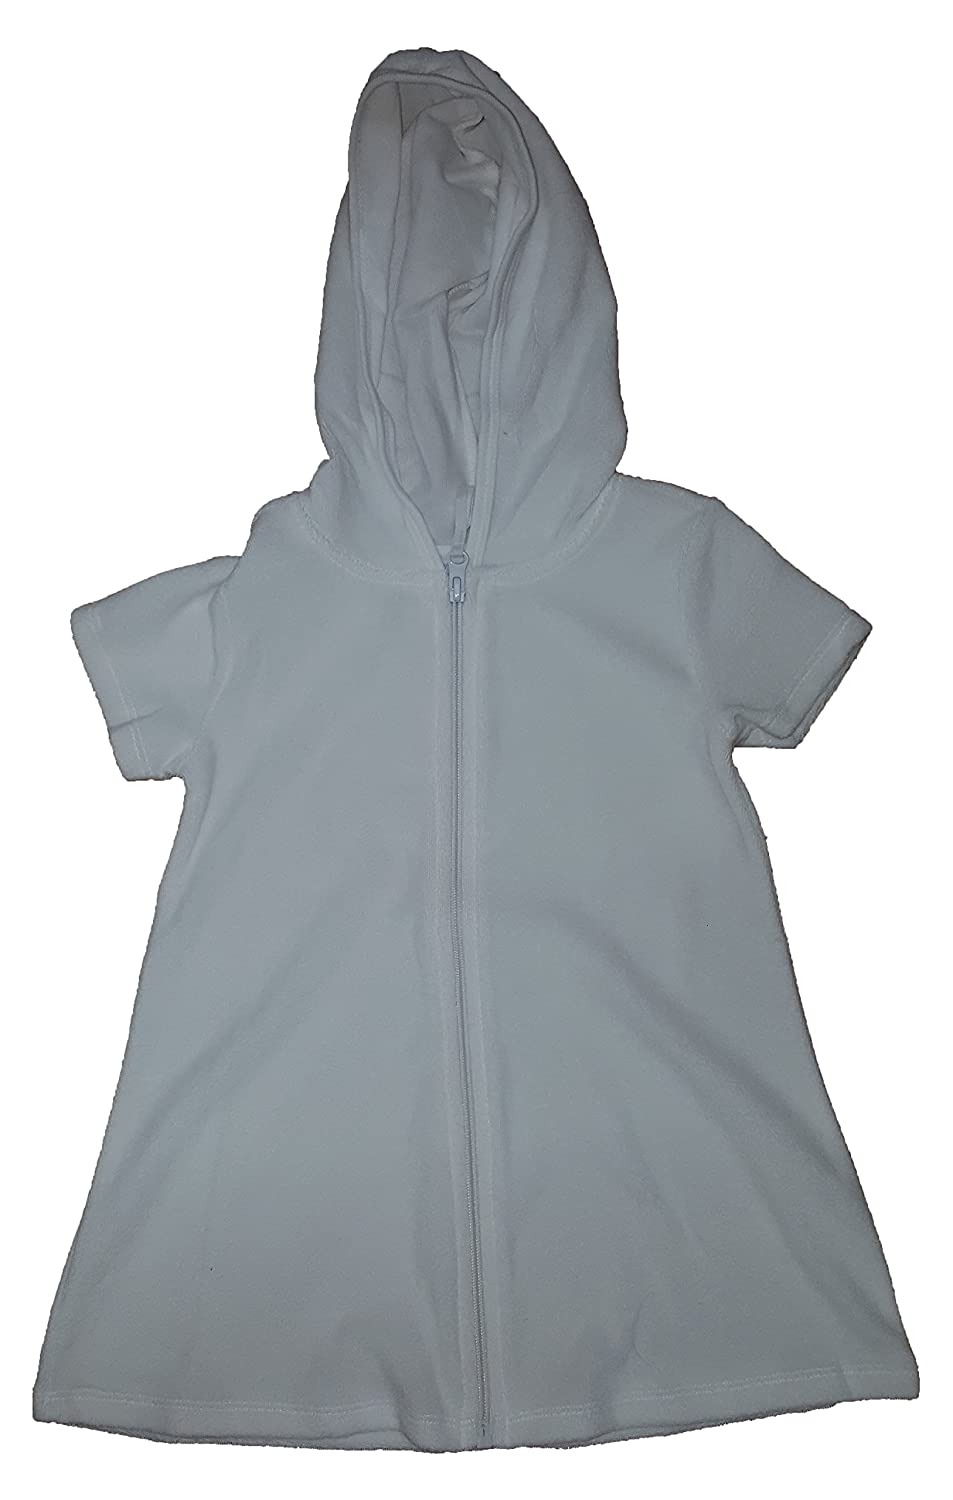 OP Girls Terry Hooded Swimsuit Cover up WGOG27700CS